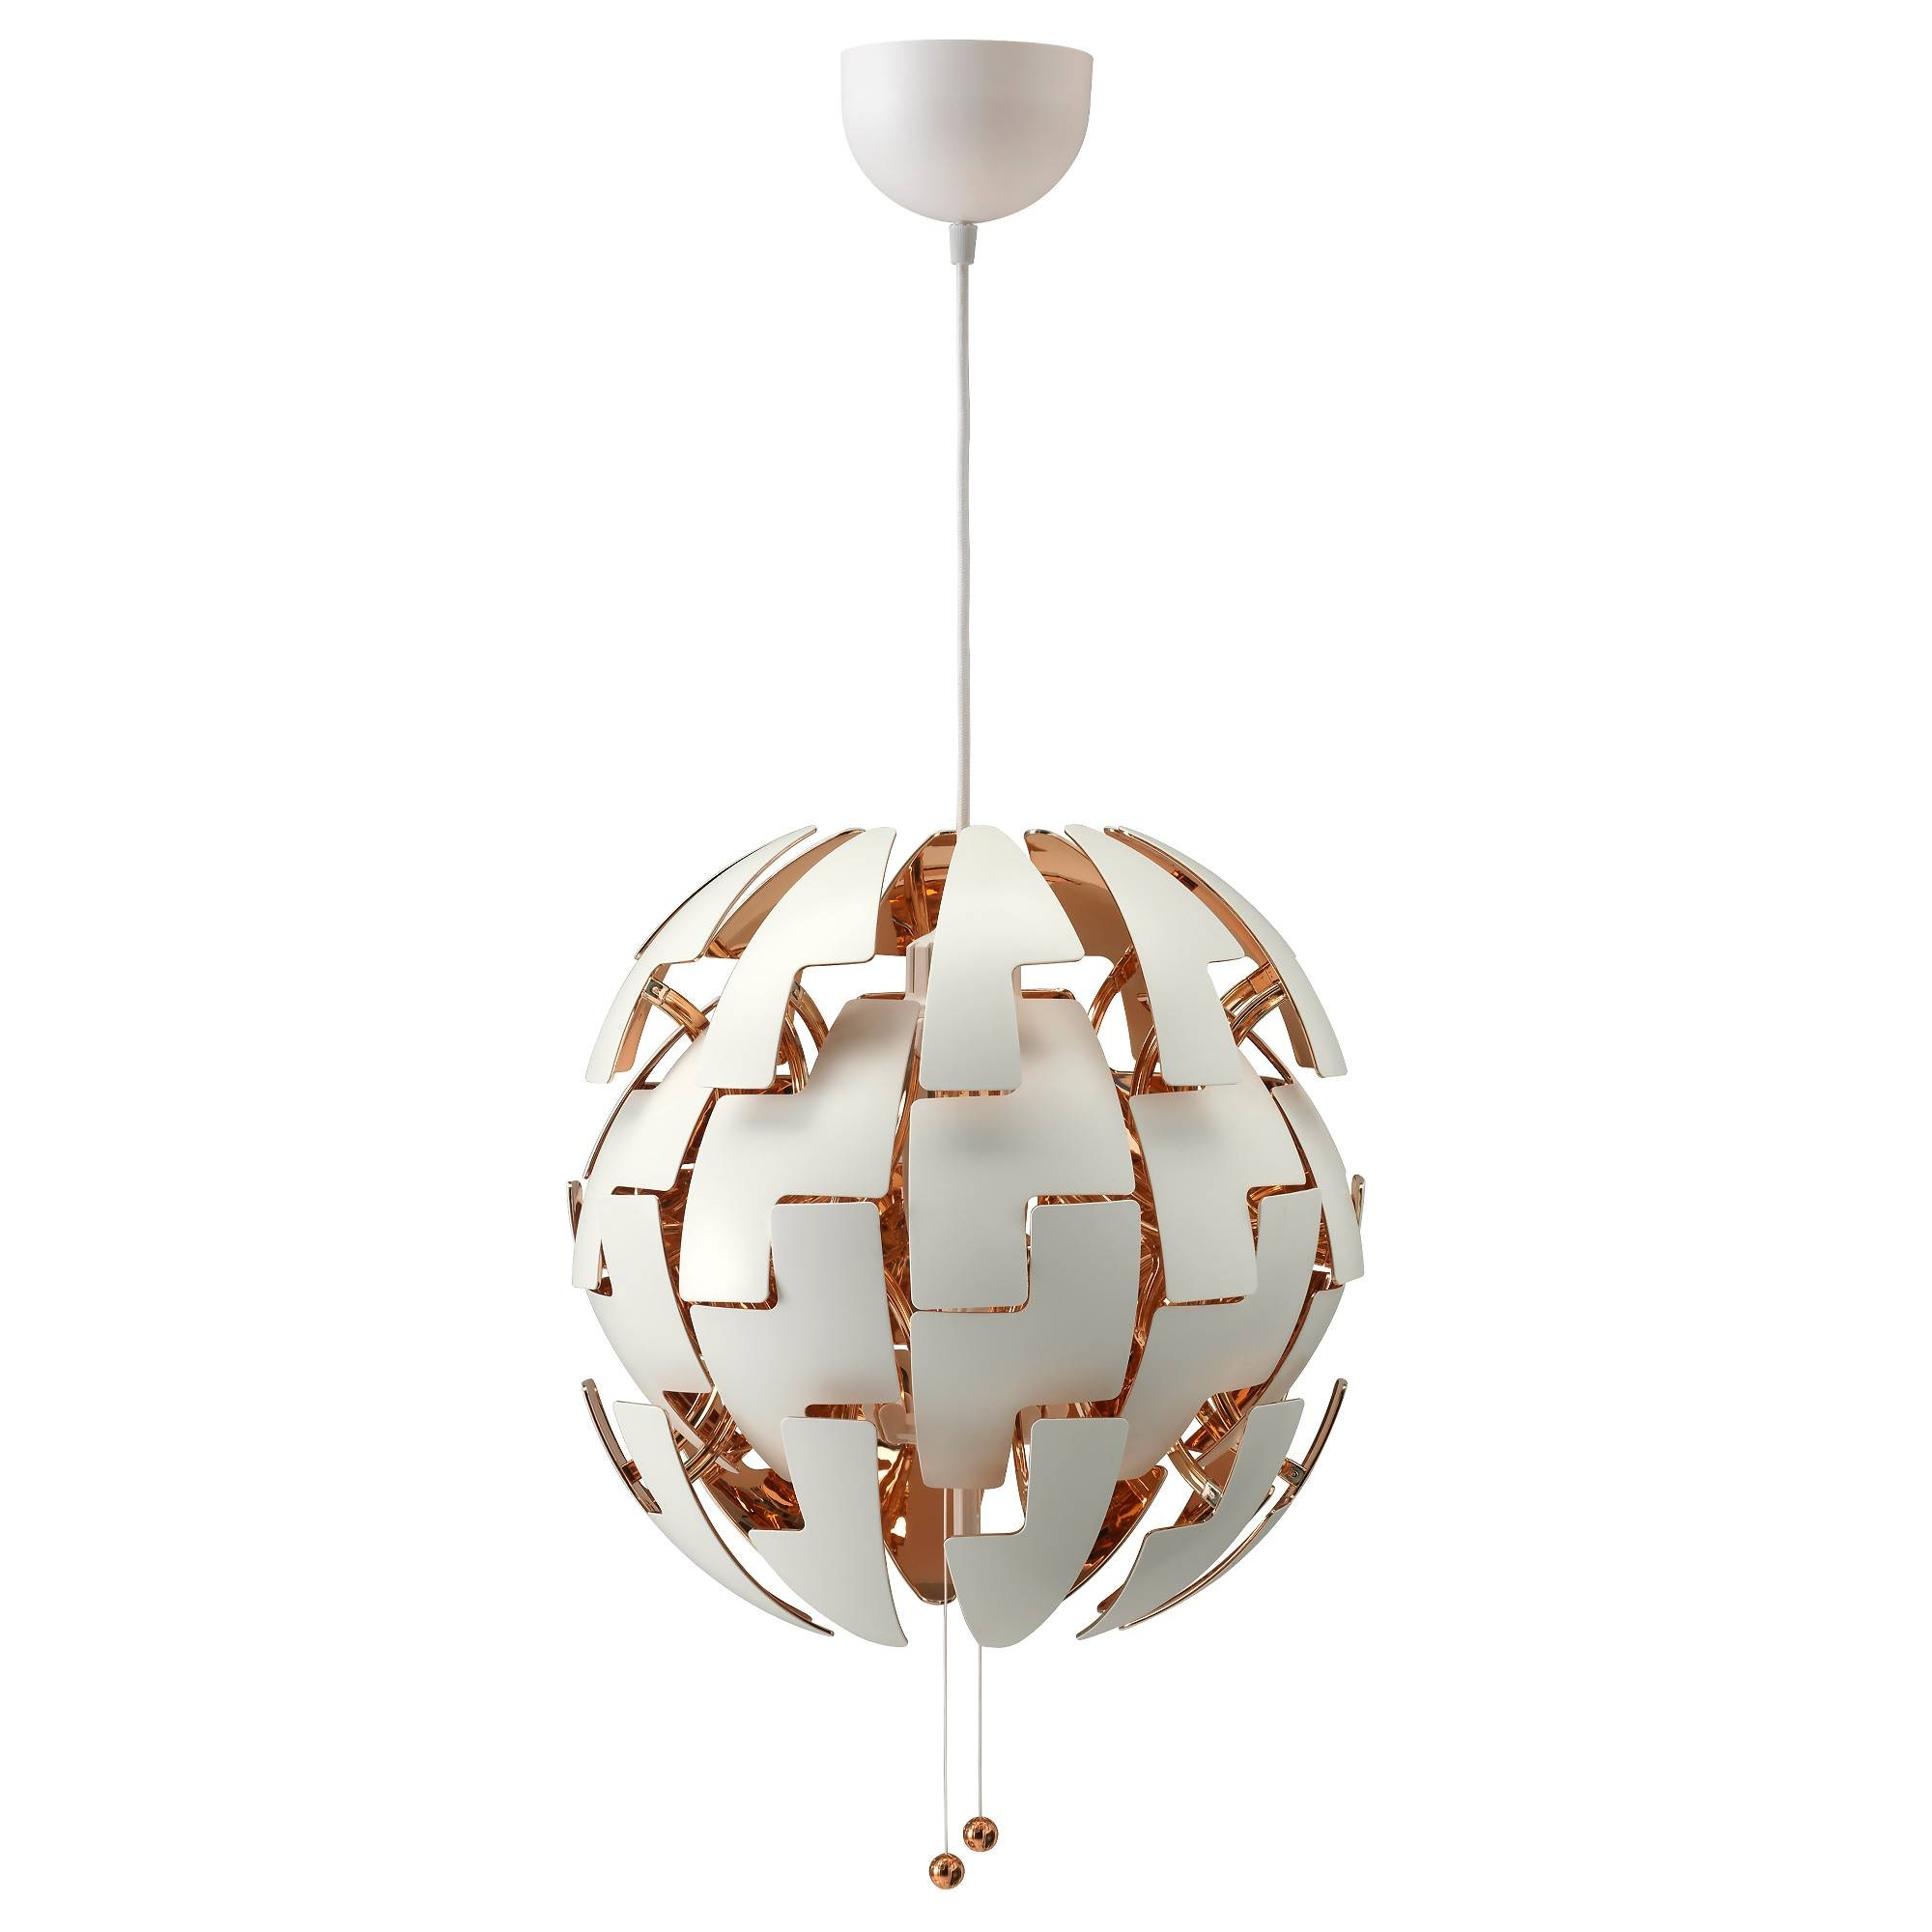 Ikea Ps 2014 Pendant Lamp White/copper Colour – Ikea In Ikea Pendent Lights (View 9 of 15)